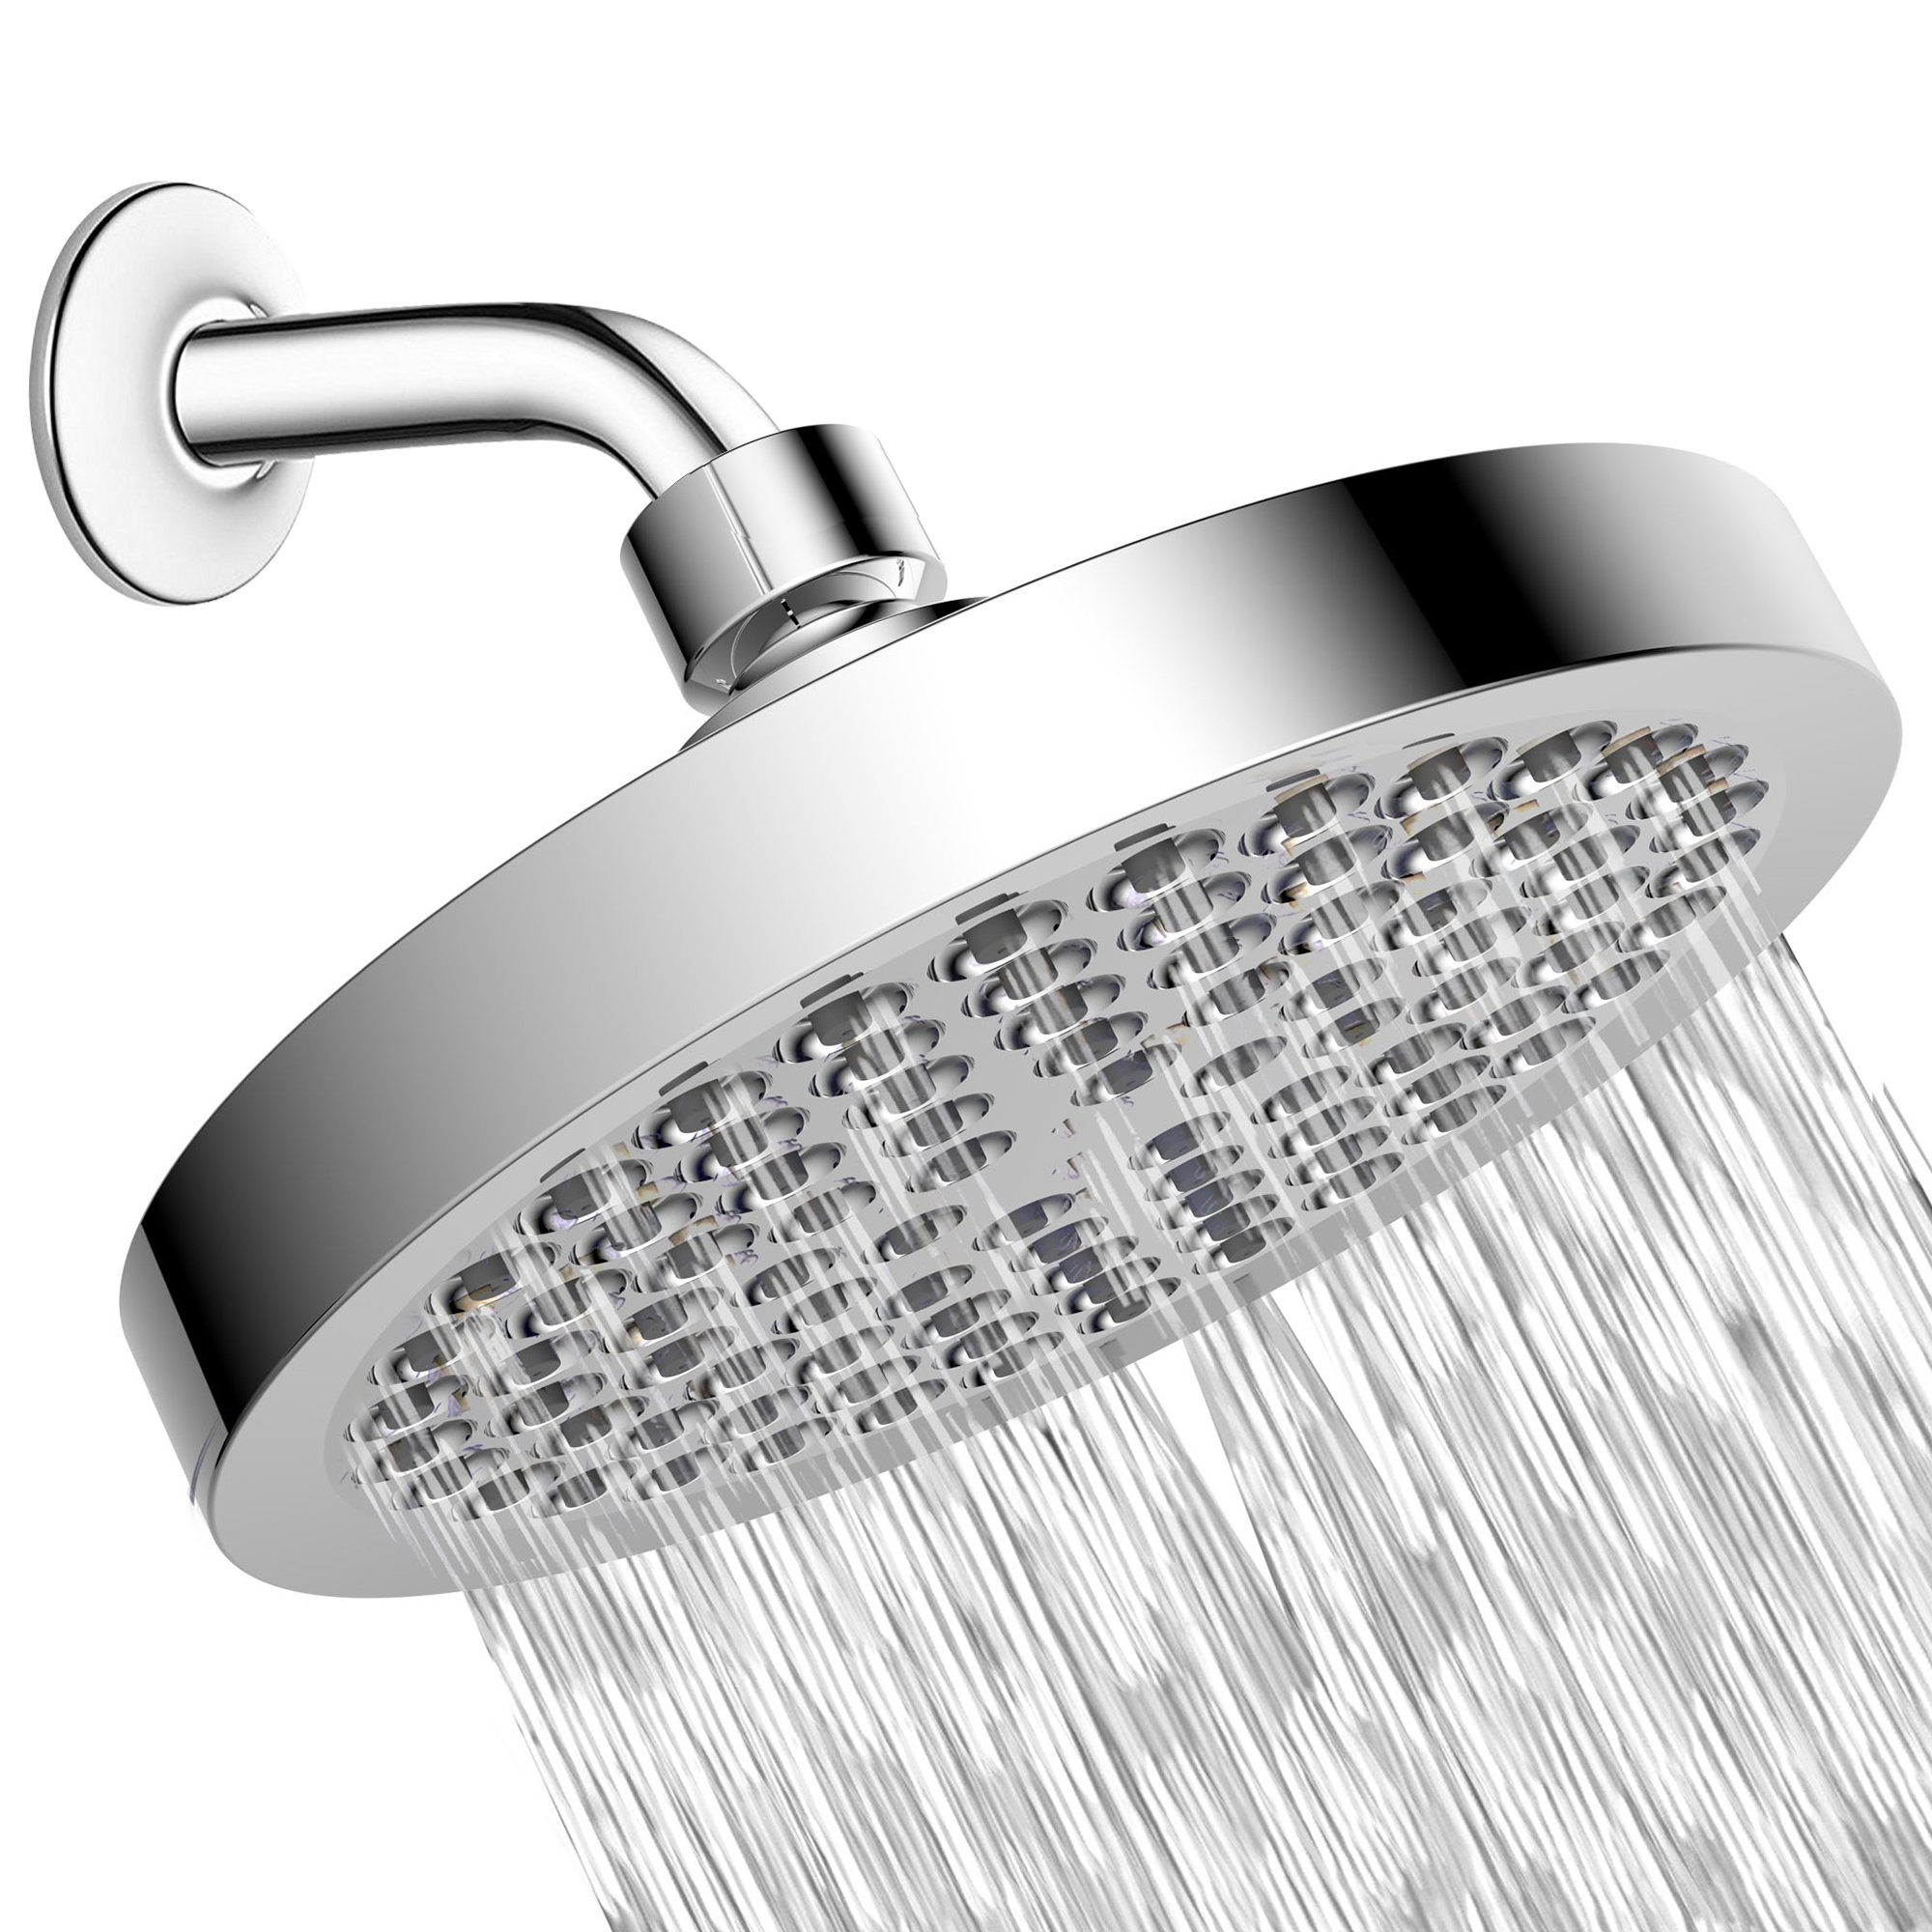 Shower Head - High Pressure Rain - Luxury Modern Chrome Look - Easy Tool Free Installation - The Perfect Adjustable & Heavy Duty Universal Replacement For Your Bathroom Shower Heads